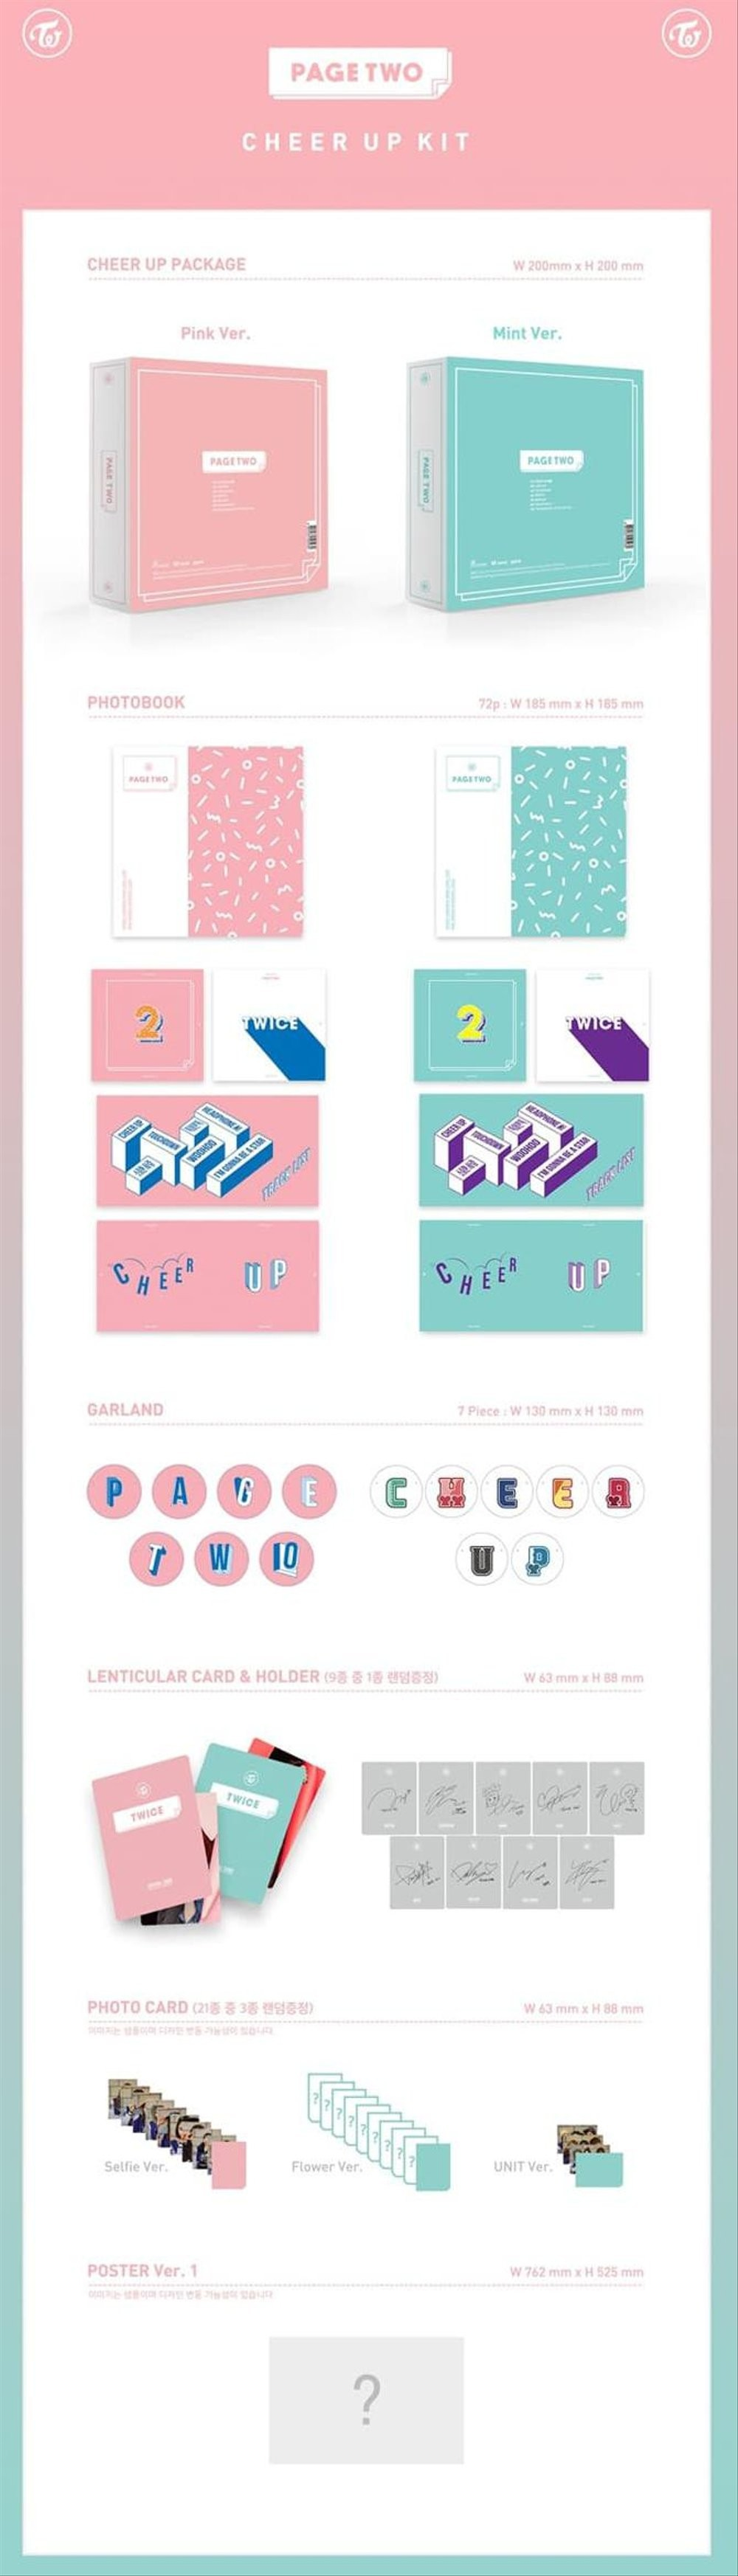 Cd Album Twice Page Two PinkMint Ver Ready No Poster